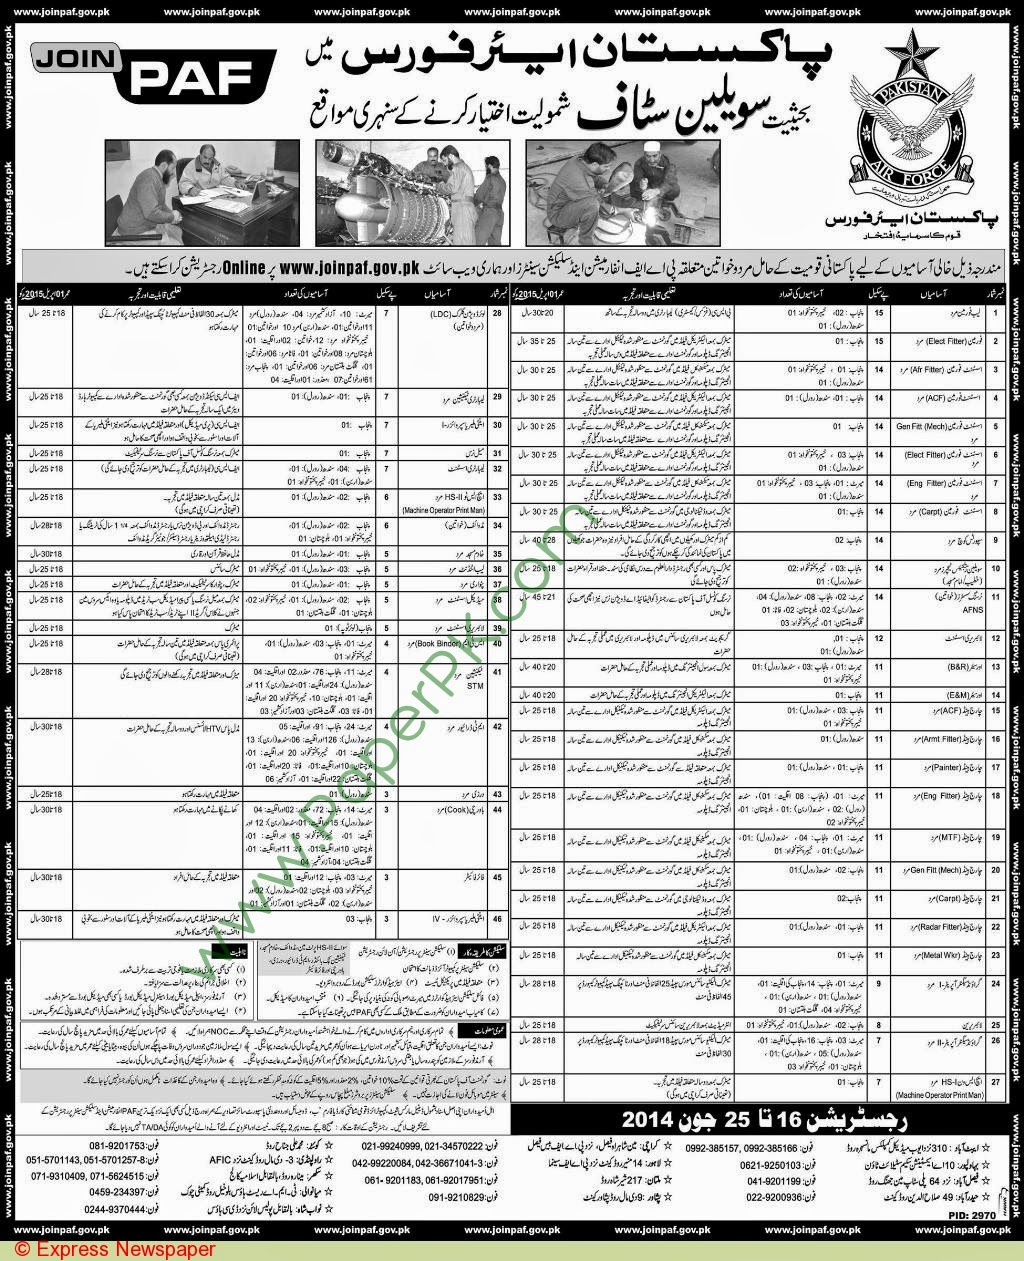 Civil Experts: Civil Jobs in VTI , KPK Govt Jobs, Pak Airforce Jobs